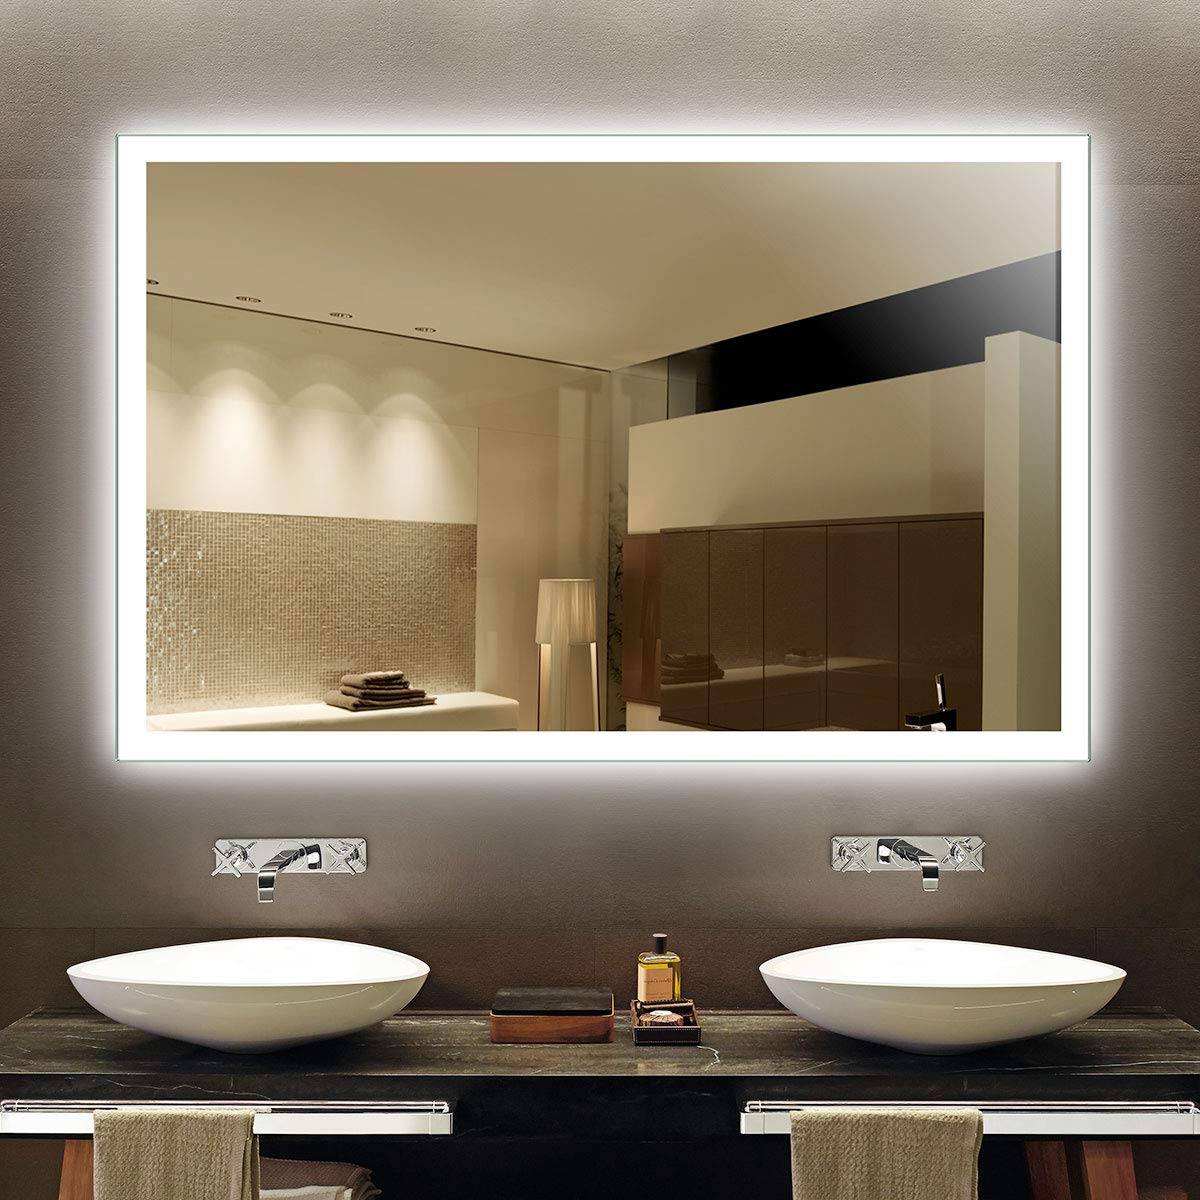 Large Lighted Bathroom Wall Mirrors Intended For Most Popular Dp Home Illuminated Bathroom Large Mirror With Infrared Sensor, 55 X 36 In, Led Lighted Vanity Sink Silver Mirror Wall Mounted (e N031 Cg) (View 12 of 20)